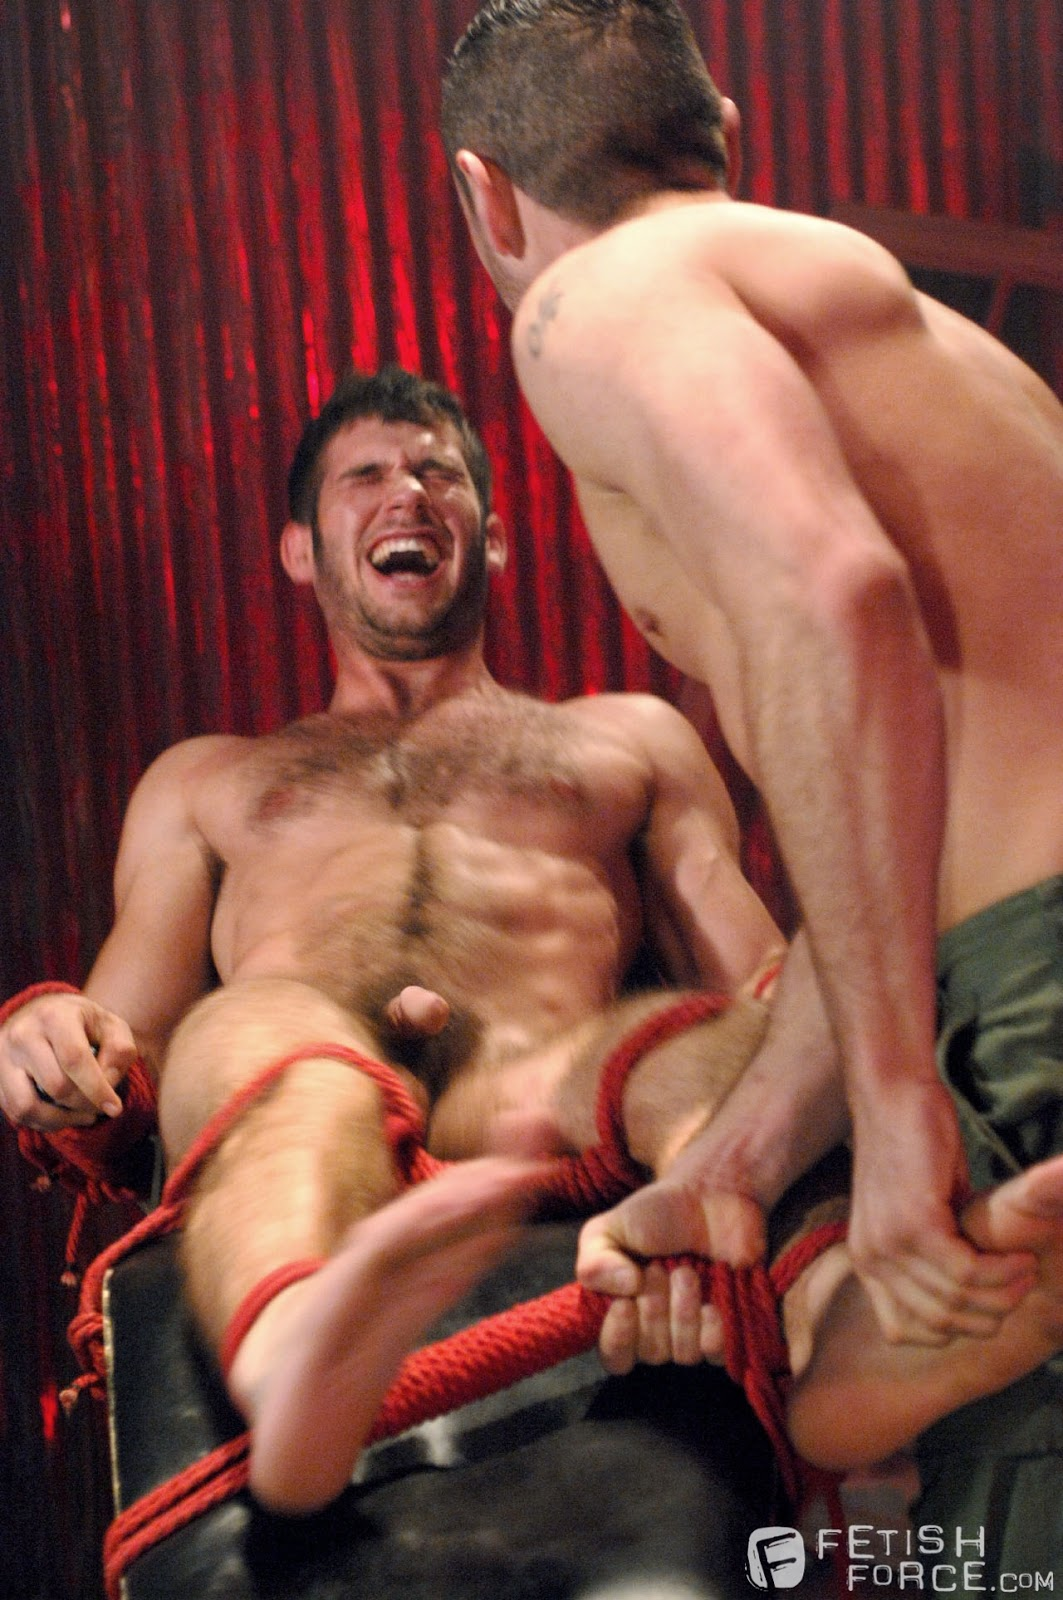 Tickle Fetish Action With A Bound Guy